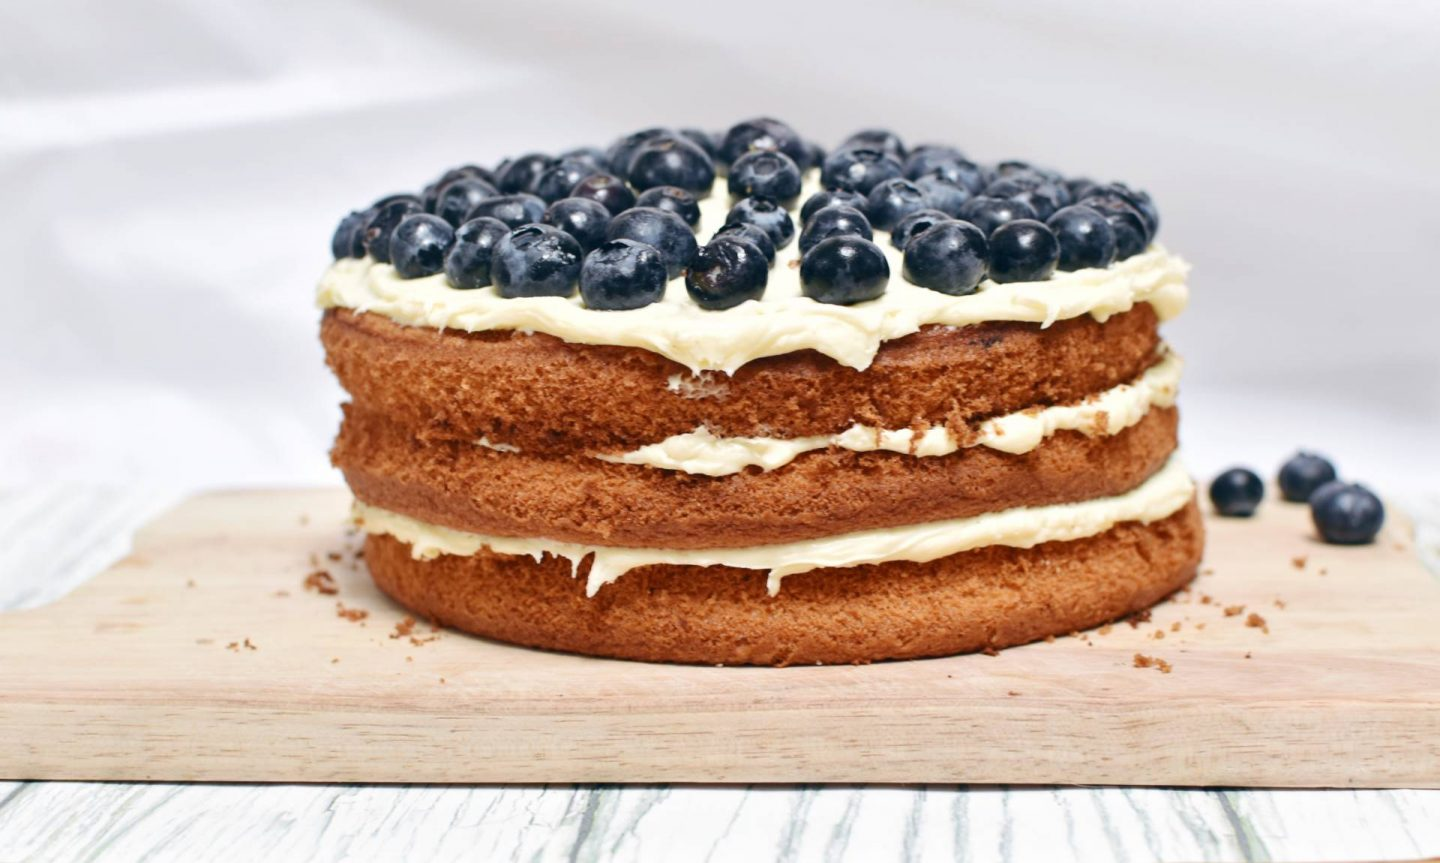 A Blueberry Cheesecake Gateaux Recipe